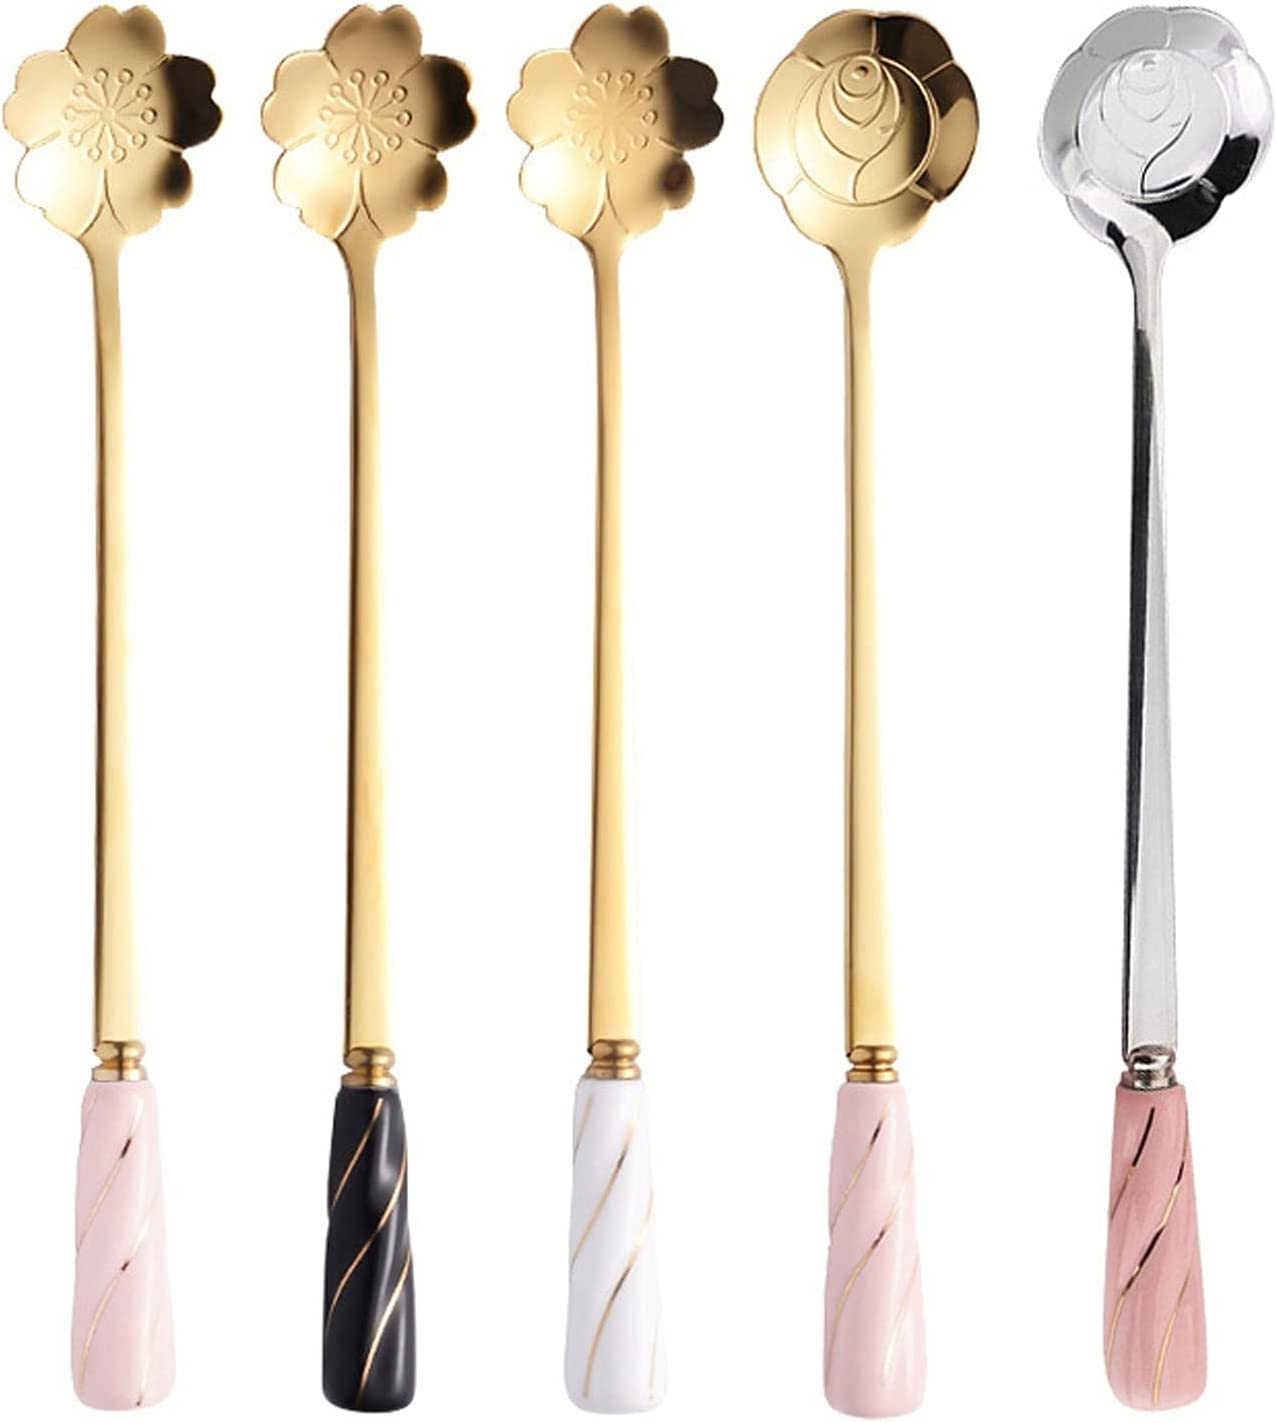 Soup Spoons Stainless Steel Flower-shaped wi Baltimore Mall Dessert Finally popular brand Spoon